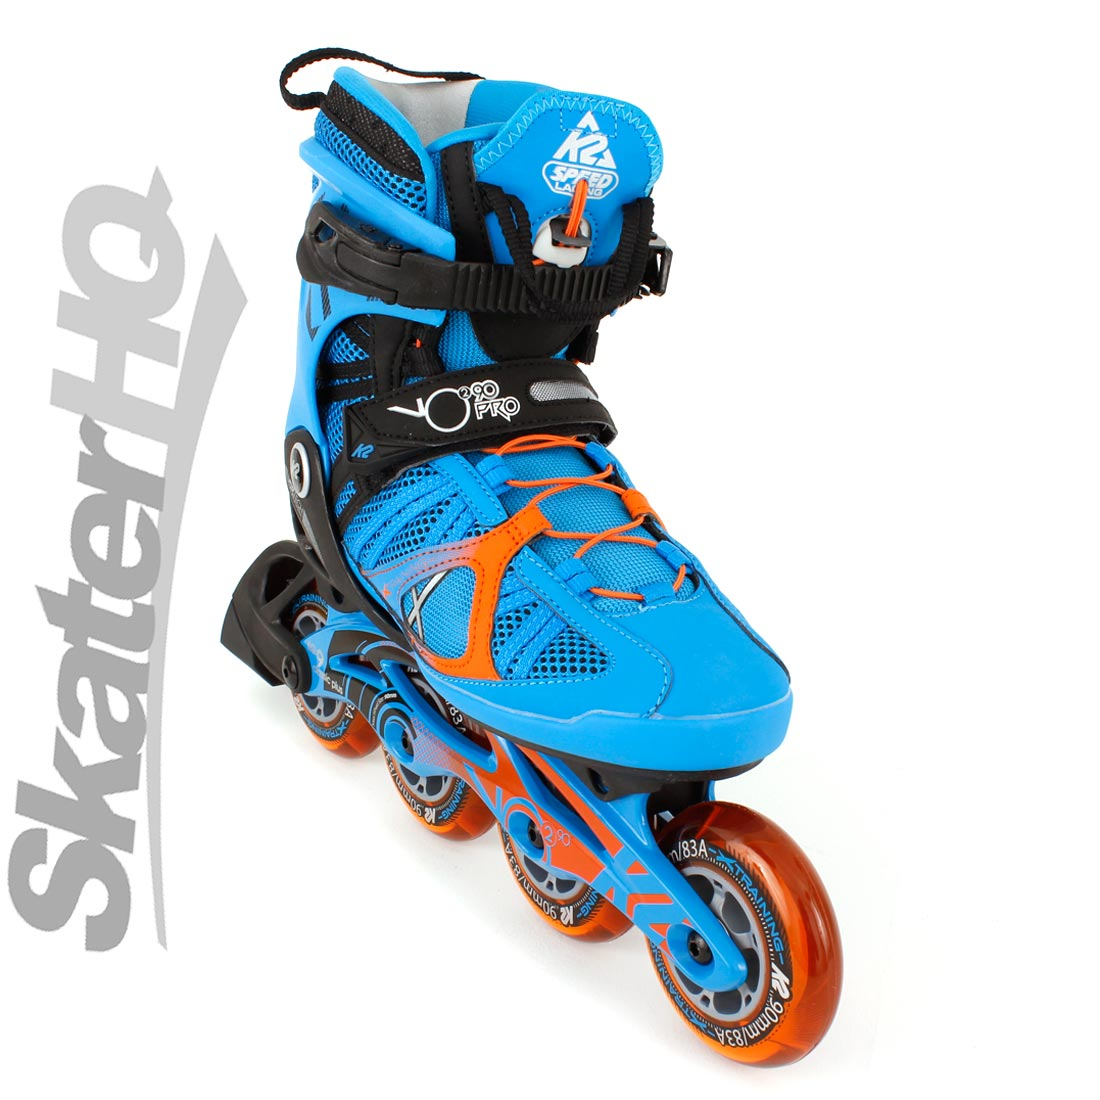 K2 VO2 90 Pro M 10US/28cm - Blue/Orange